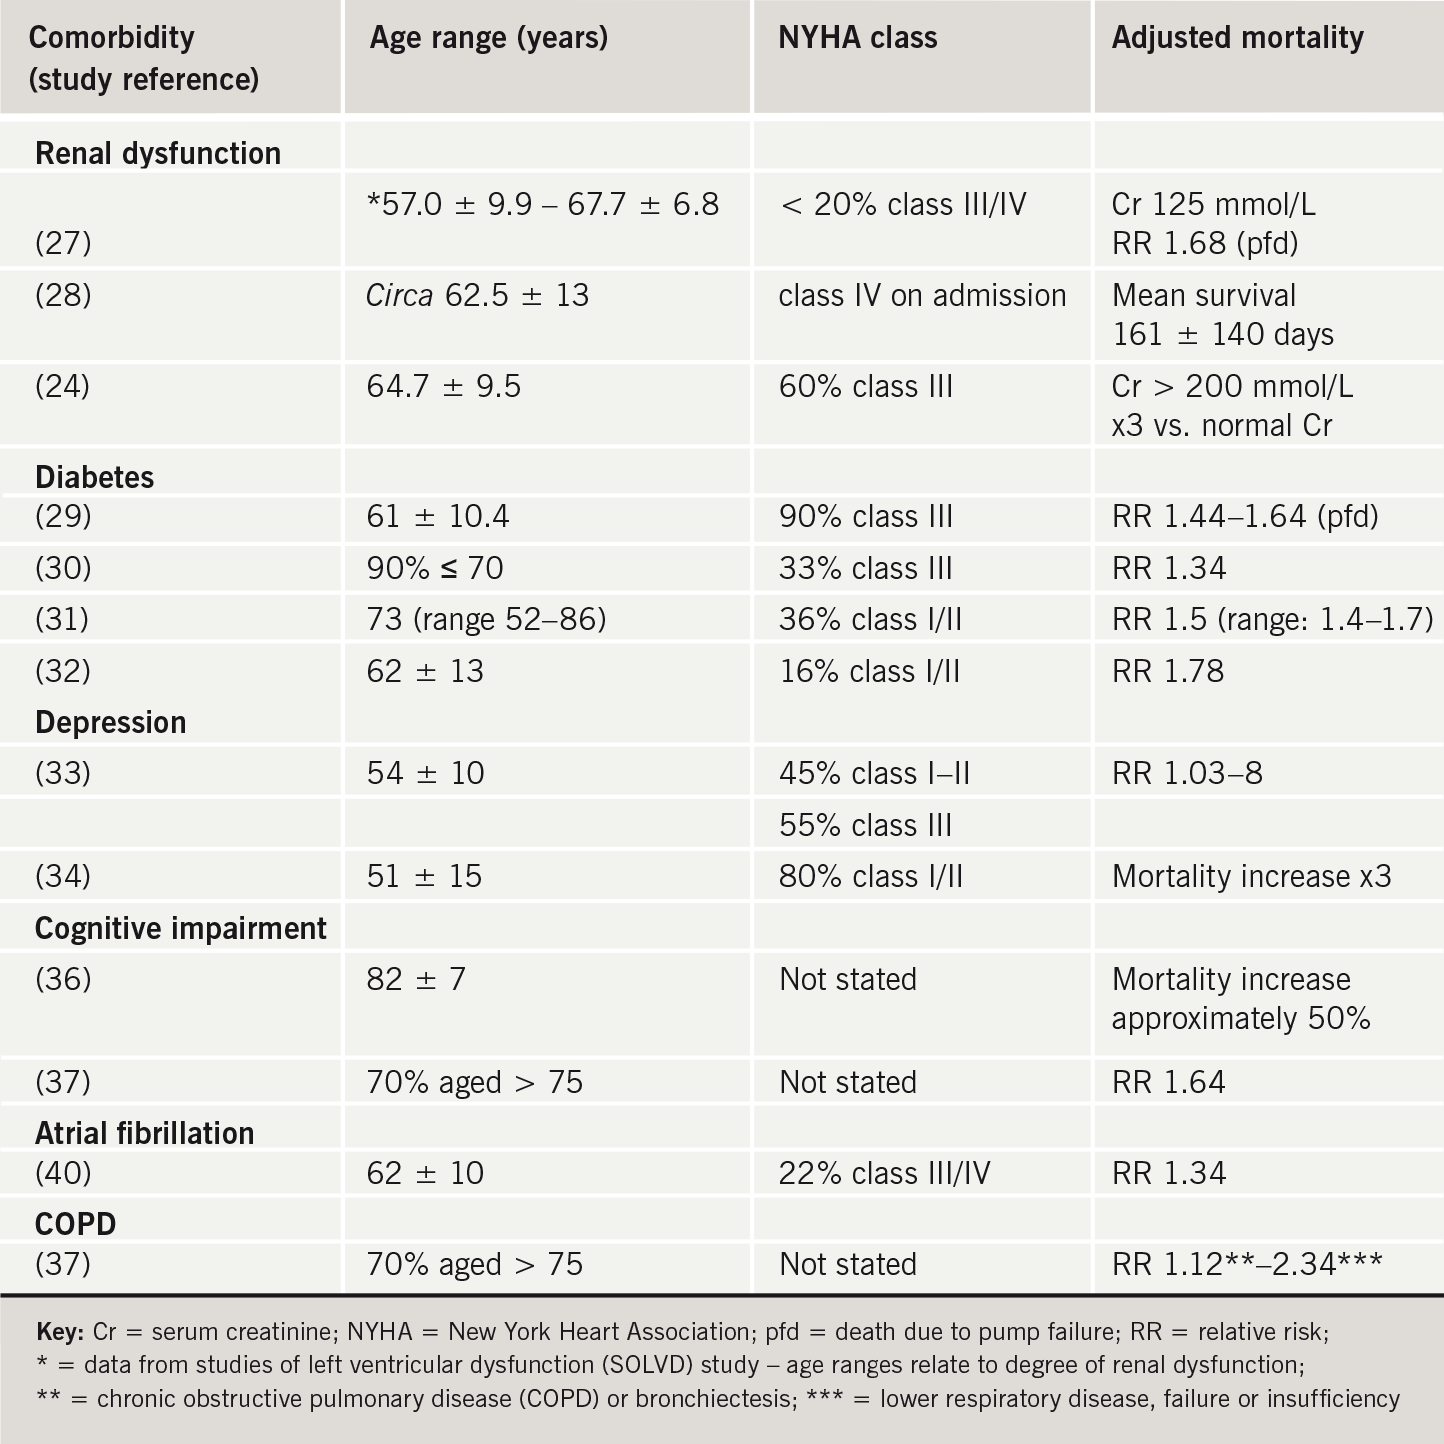 Table 1. Summary of impact of selected co-morbidities on mortality in heart failure